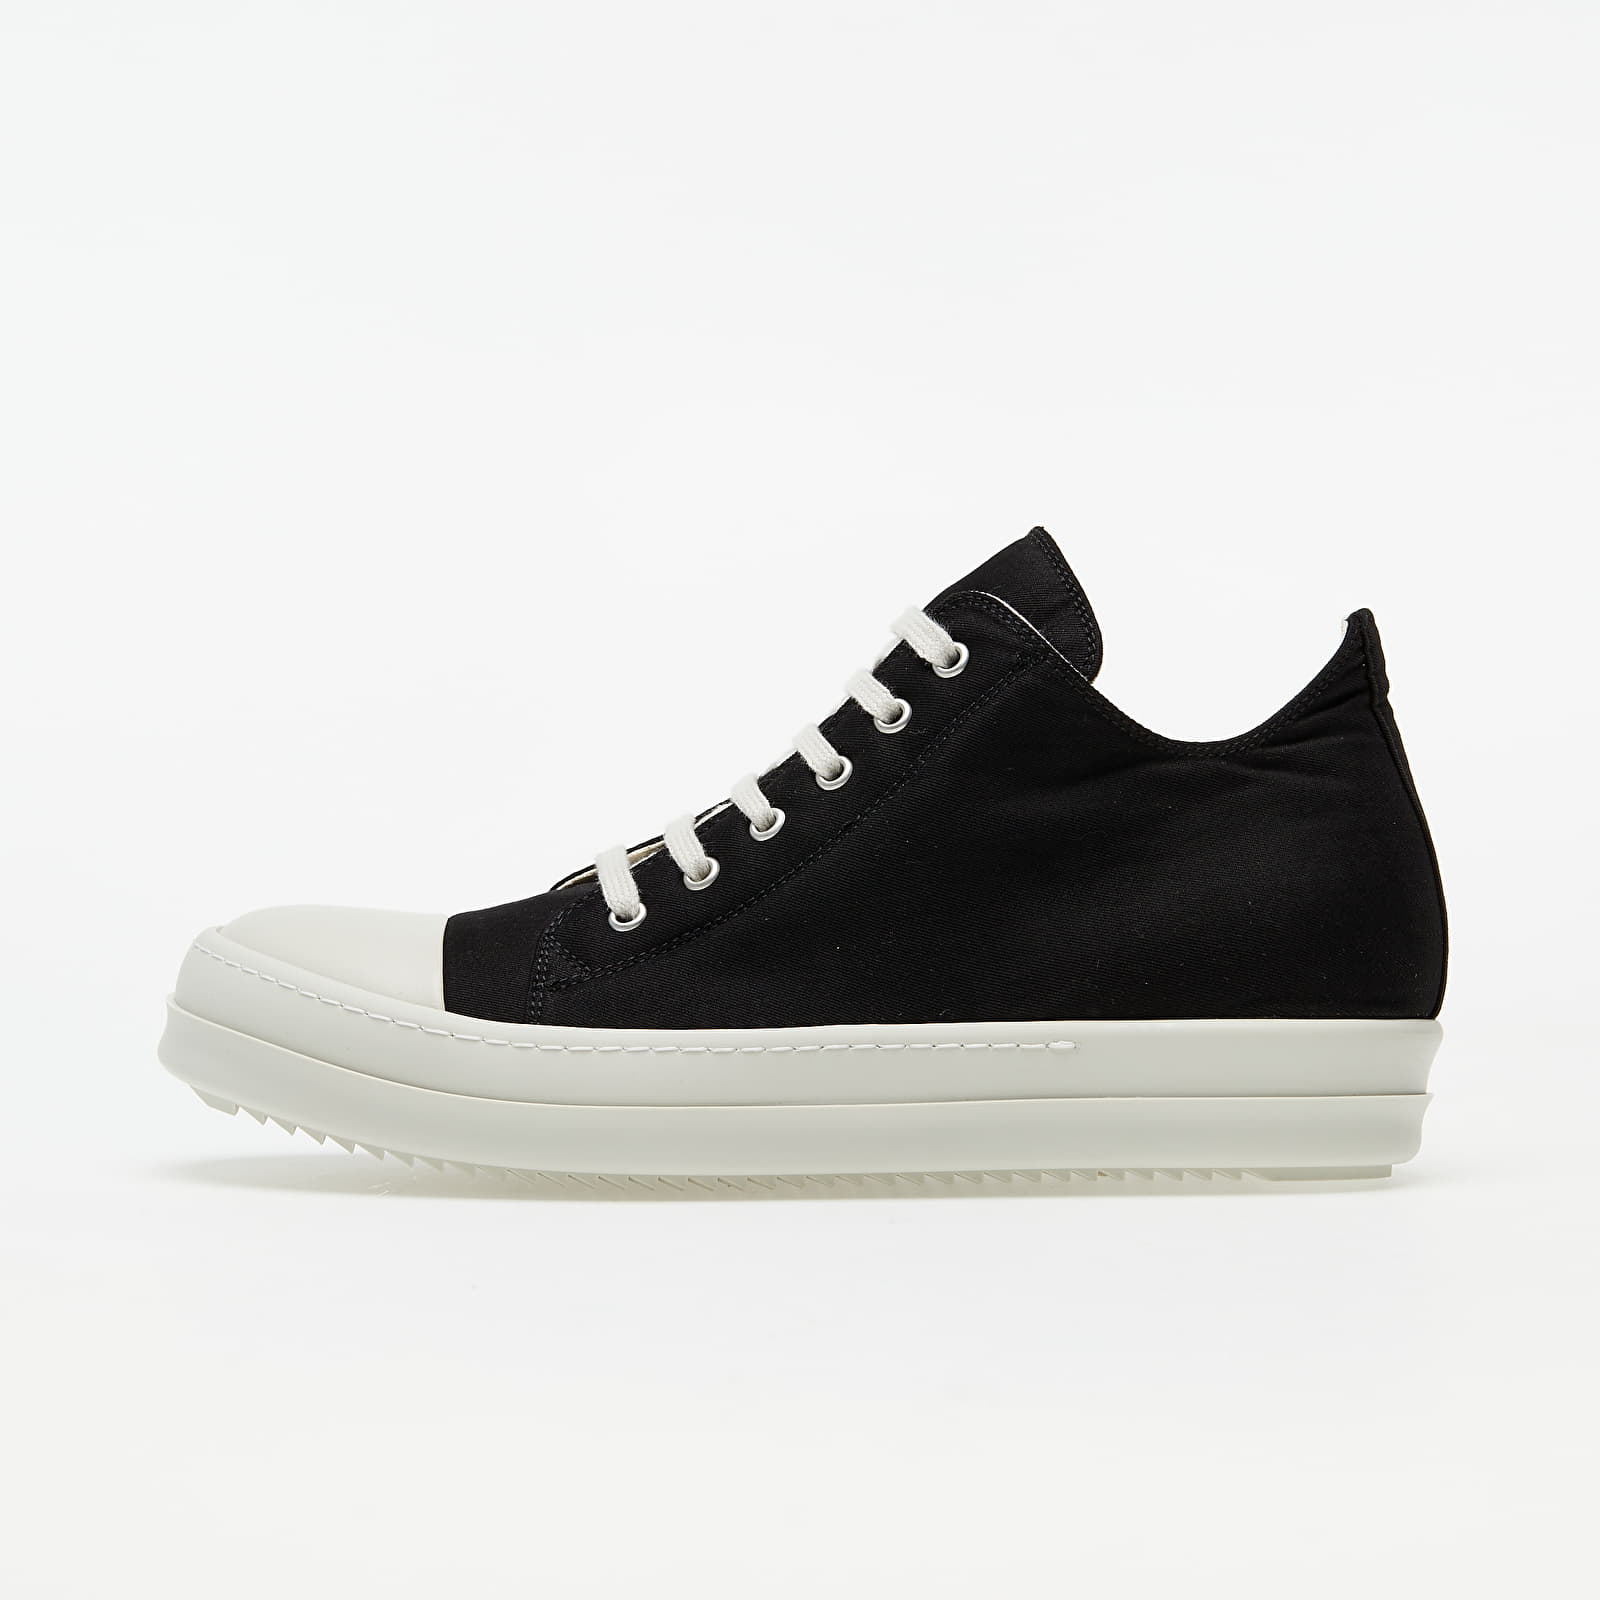 Rick Owens DRKSHDW Low Sneakers Black/ White DU20F1802 TWP